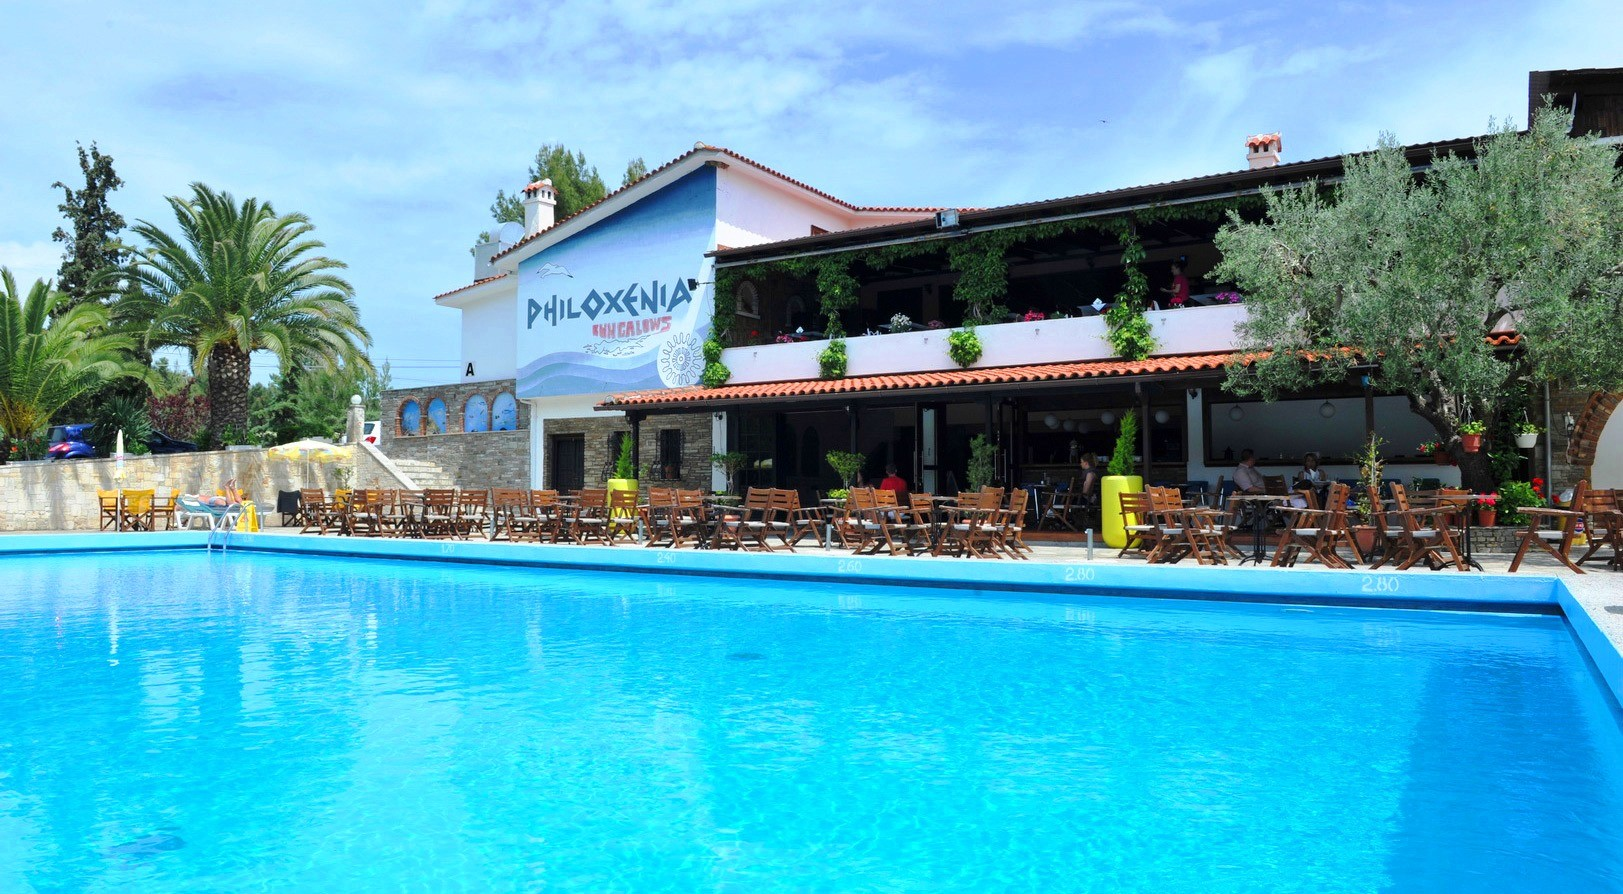 Philoxenia Bungalows Hotel - бар и басейн